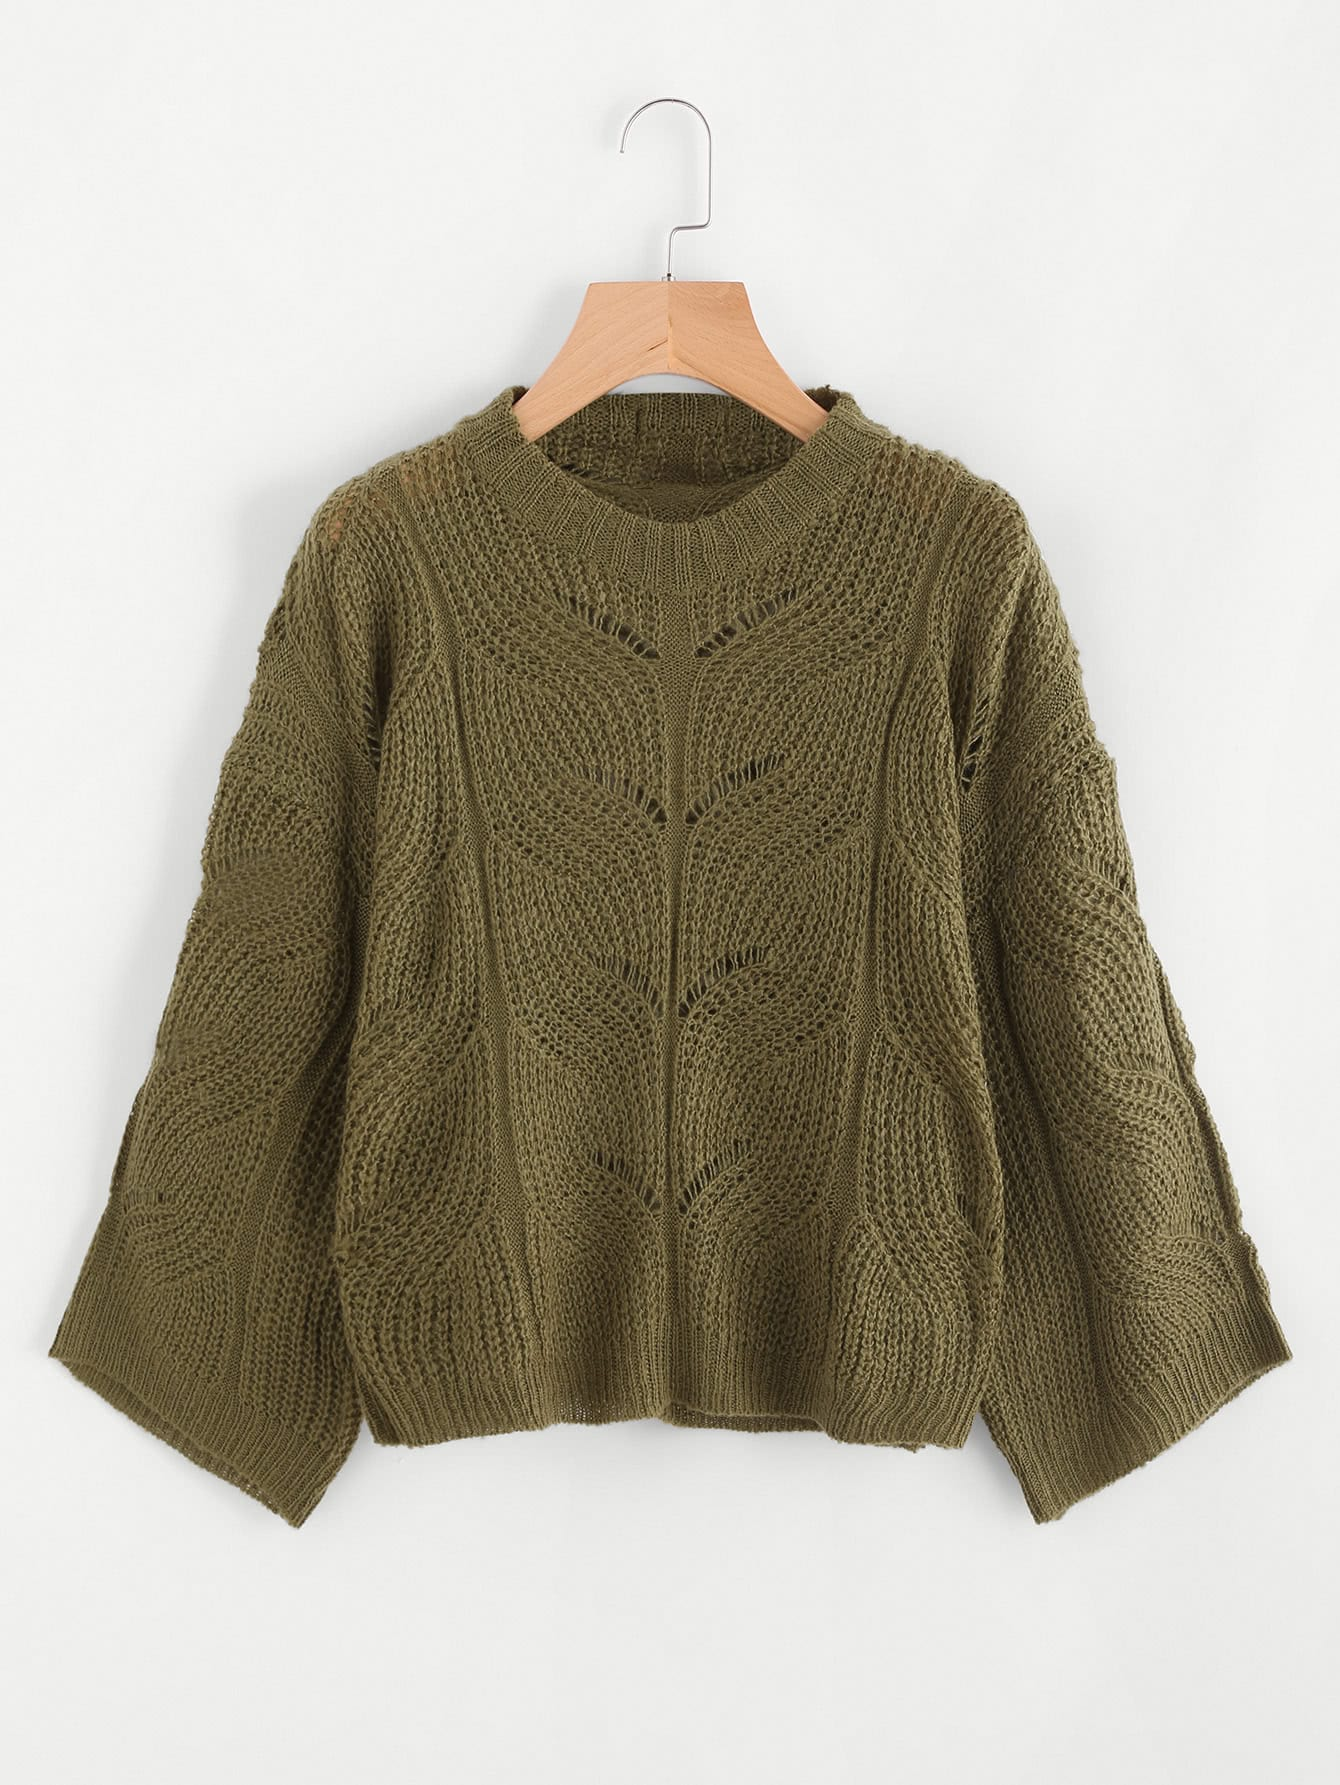 Hollow Out Cable Knit Sweater RKNI170824122